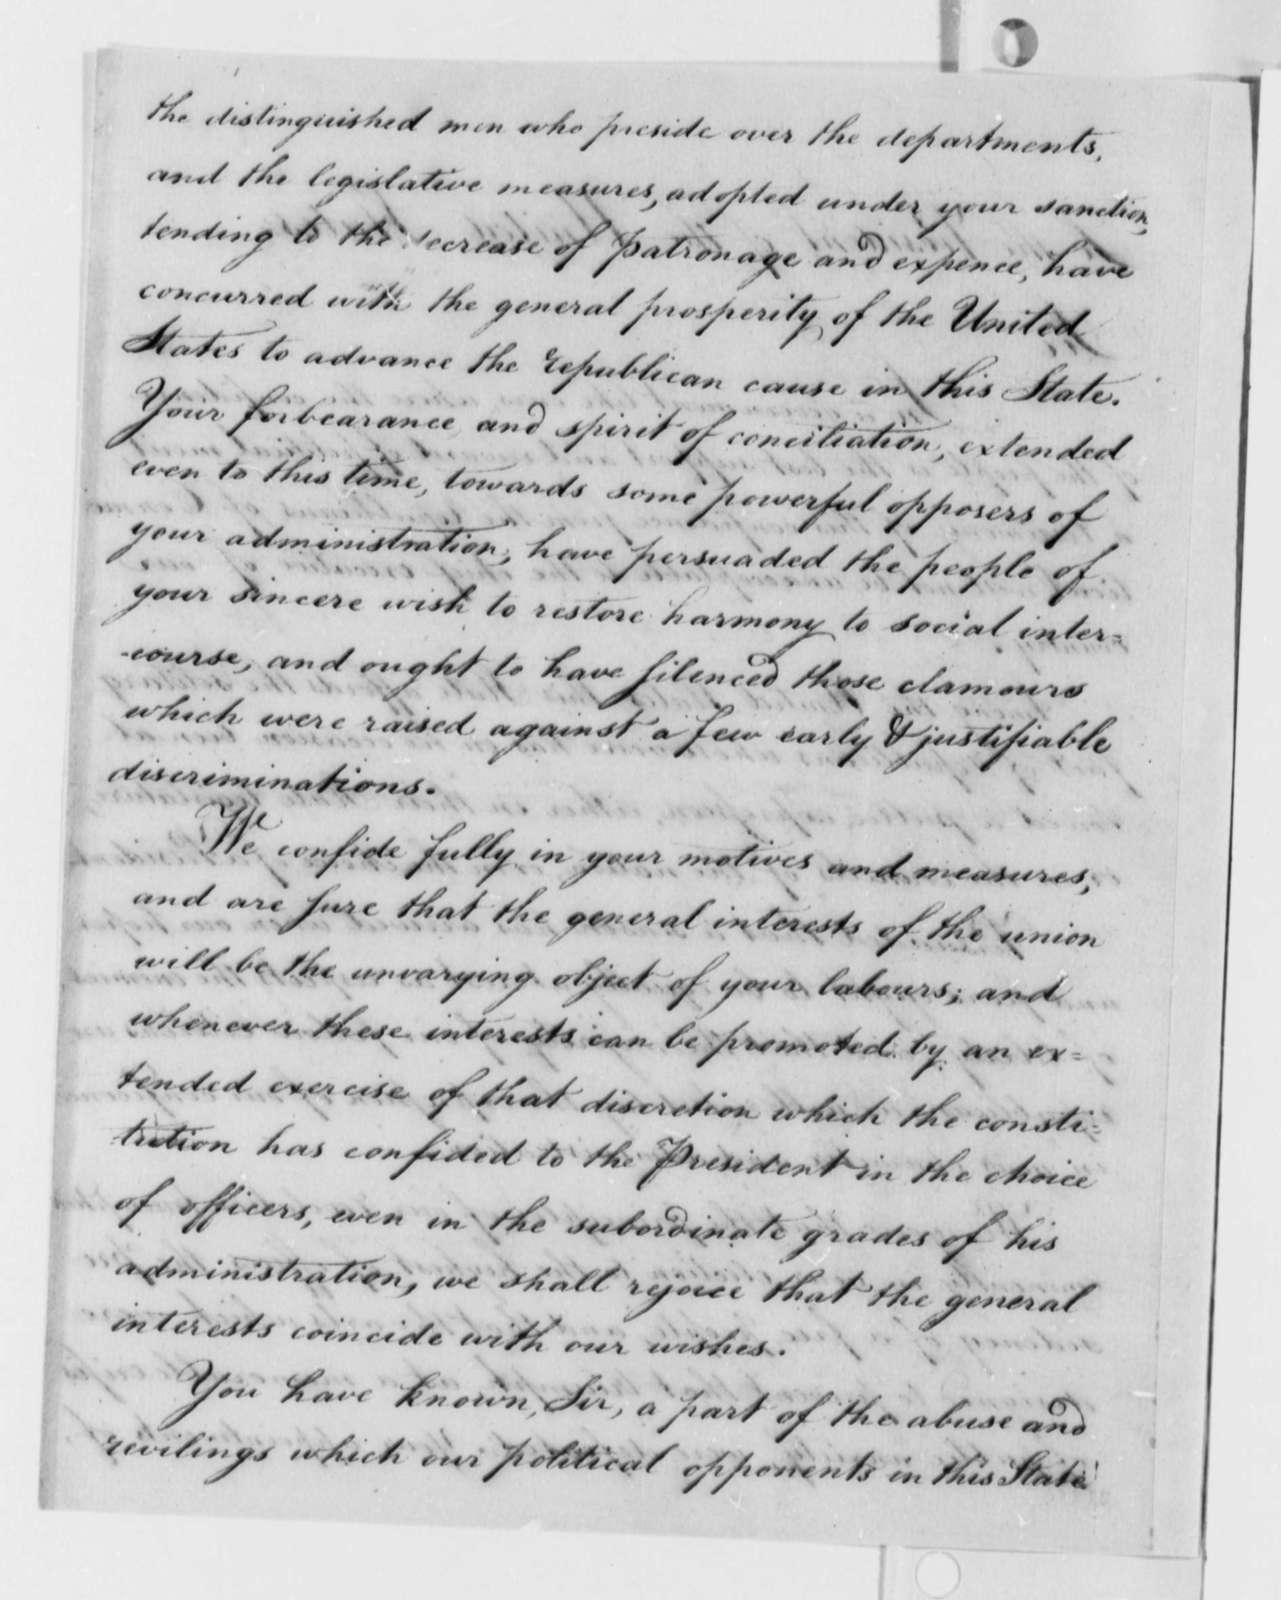 Connecticut Republicans to Thomas Jefferson, October 27, 1802, Address